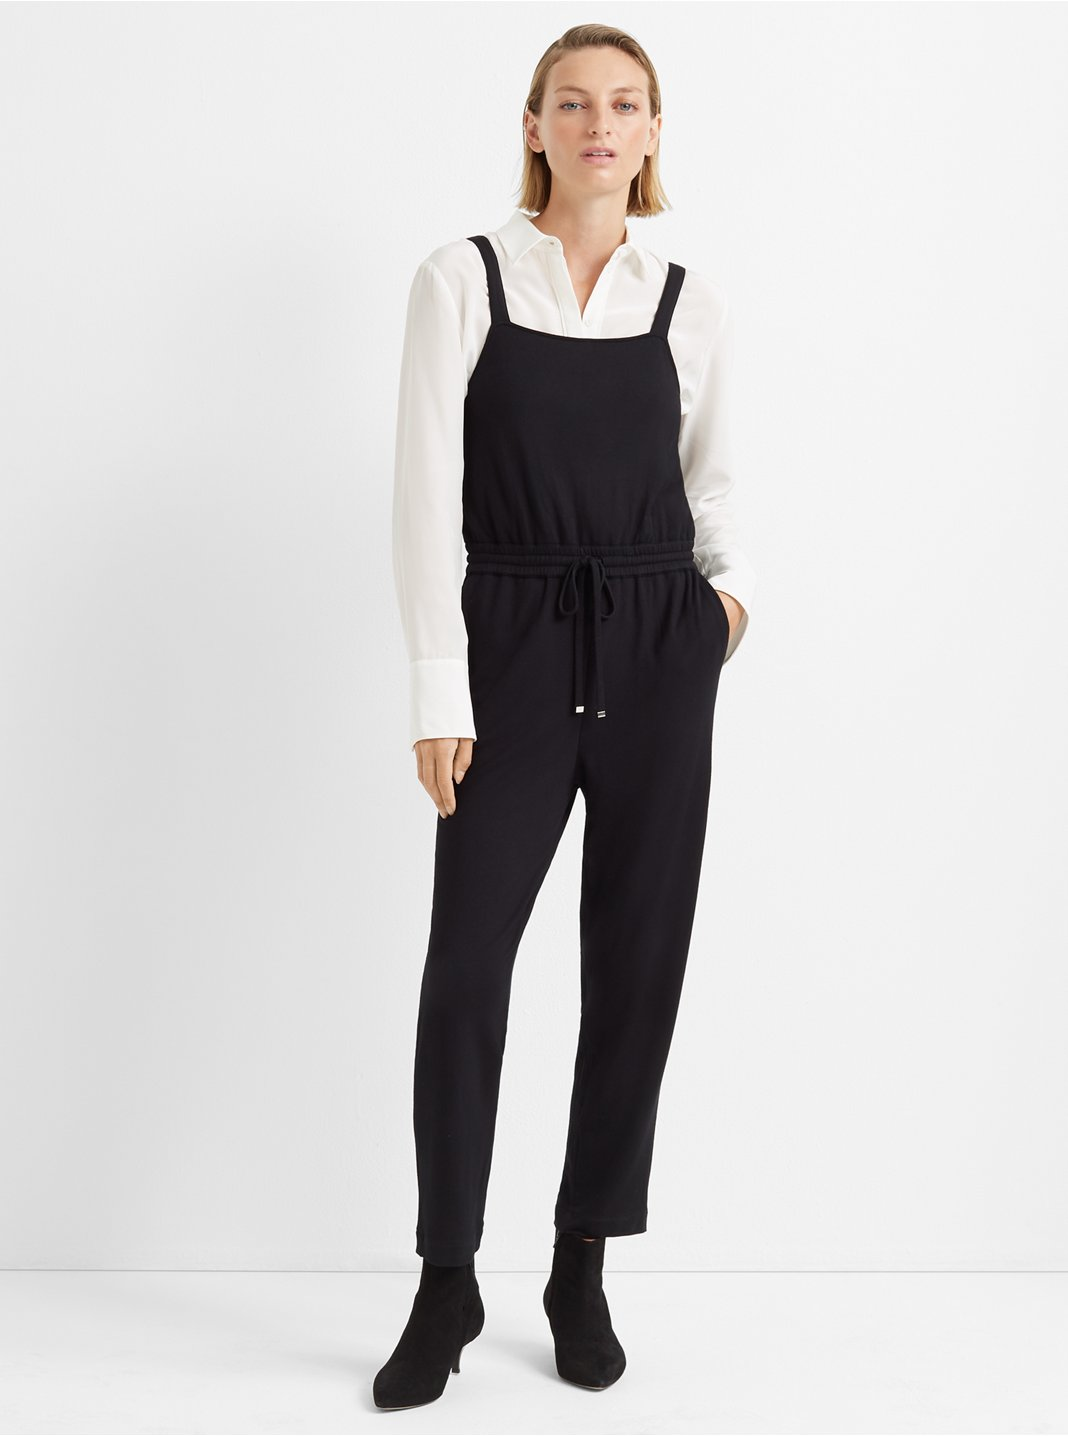 Ciggy Knit Jumpsuit